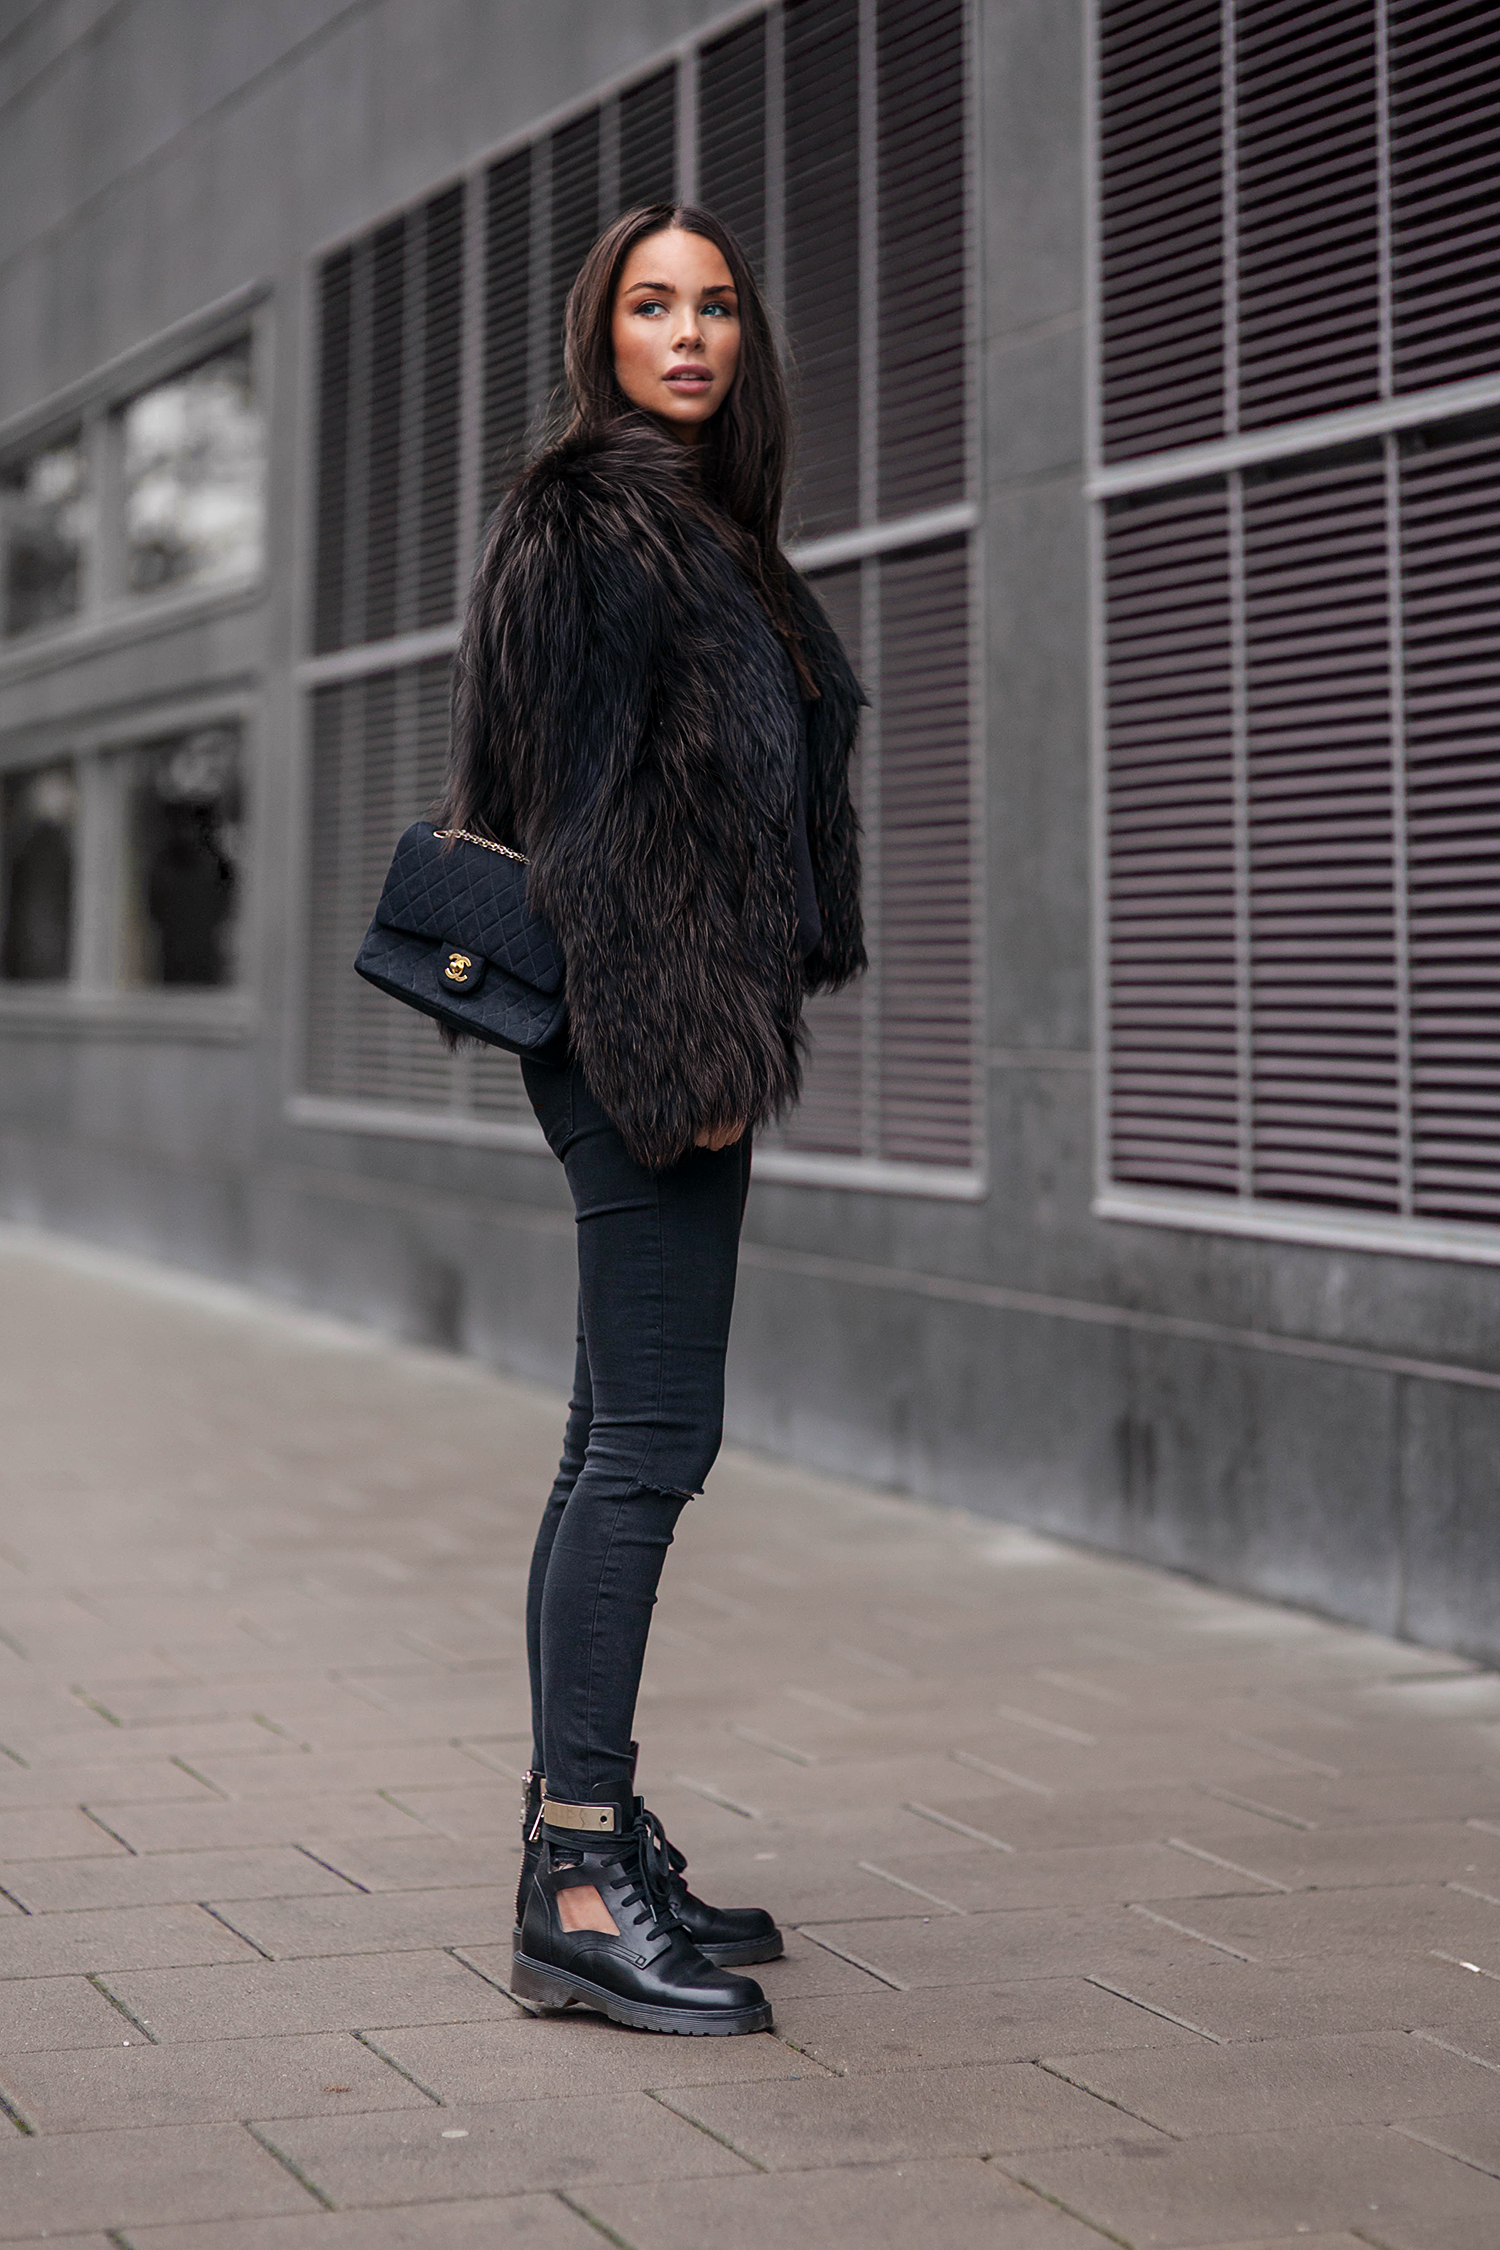 Fluffy Coats For WinterHere Are Some Of The Best Ones - Just